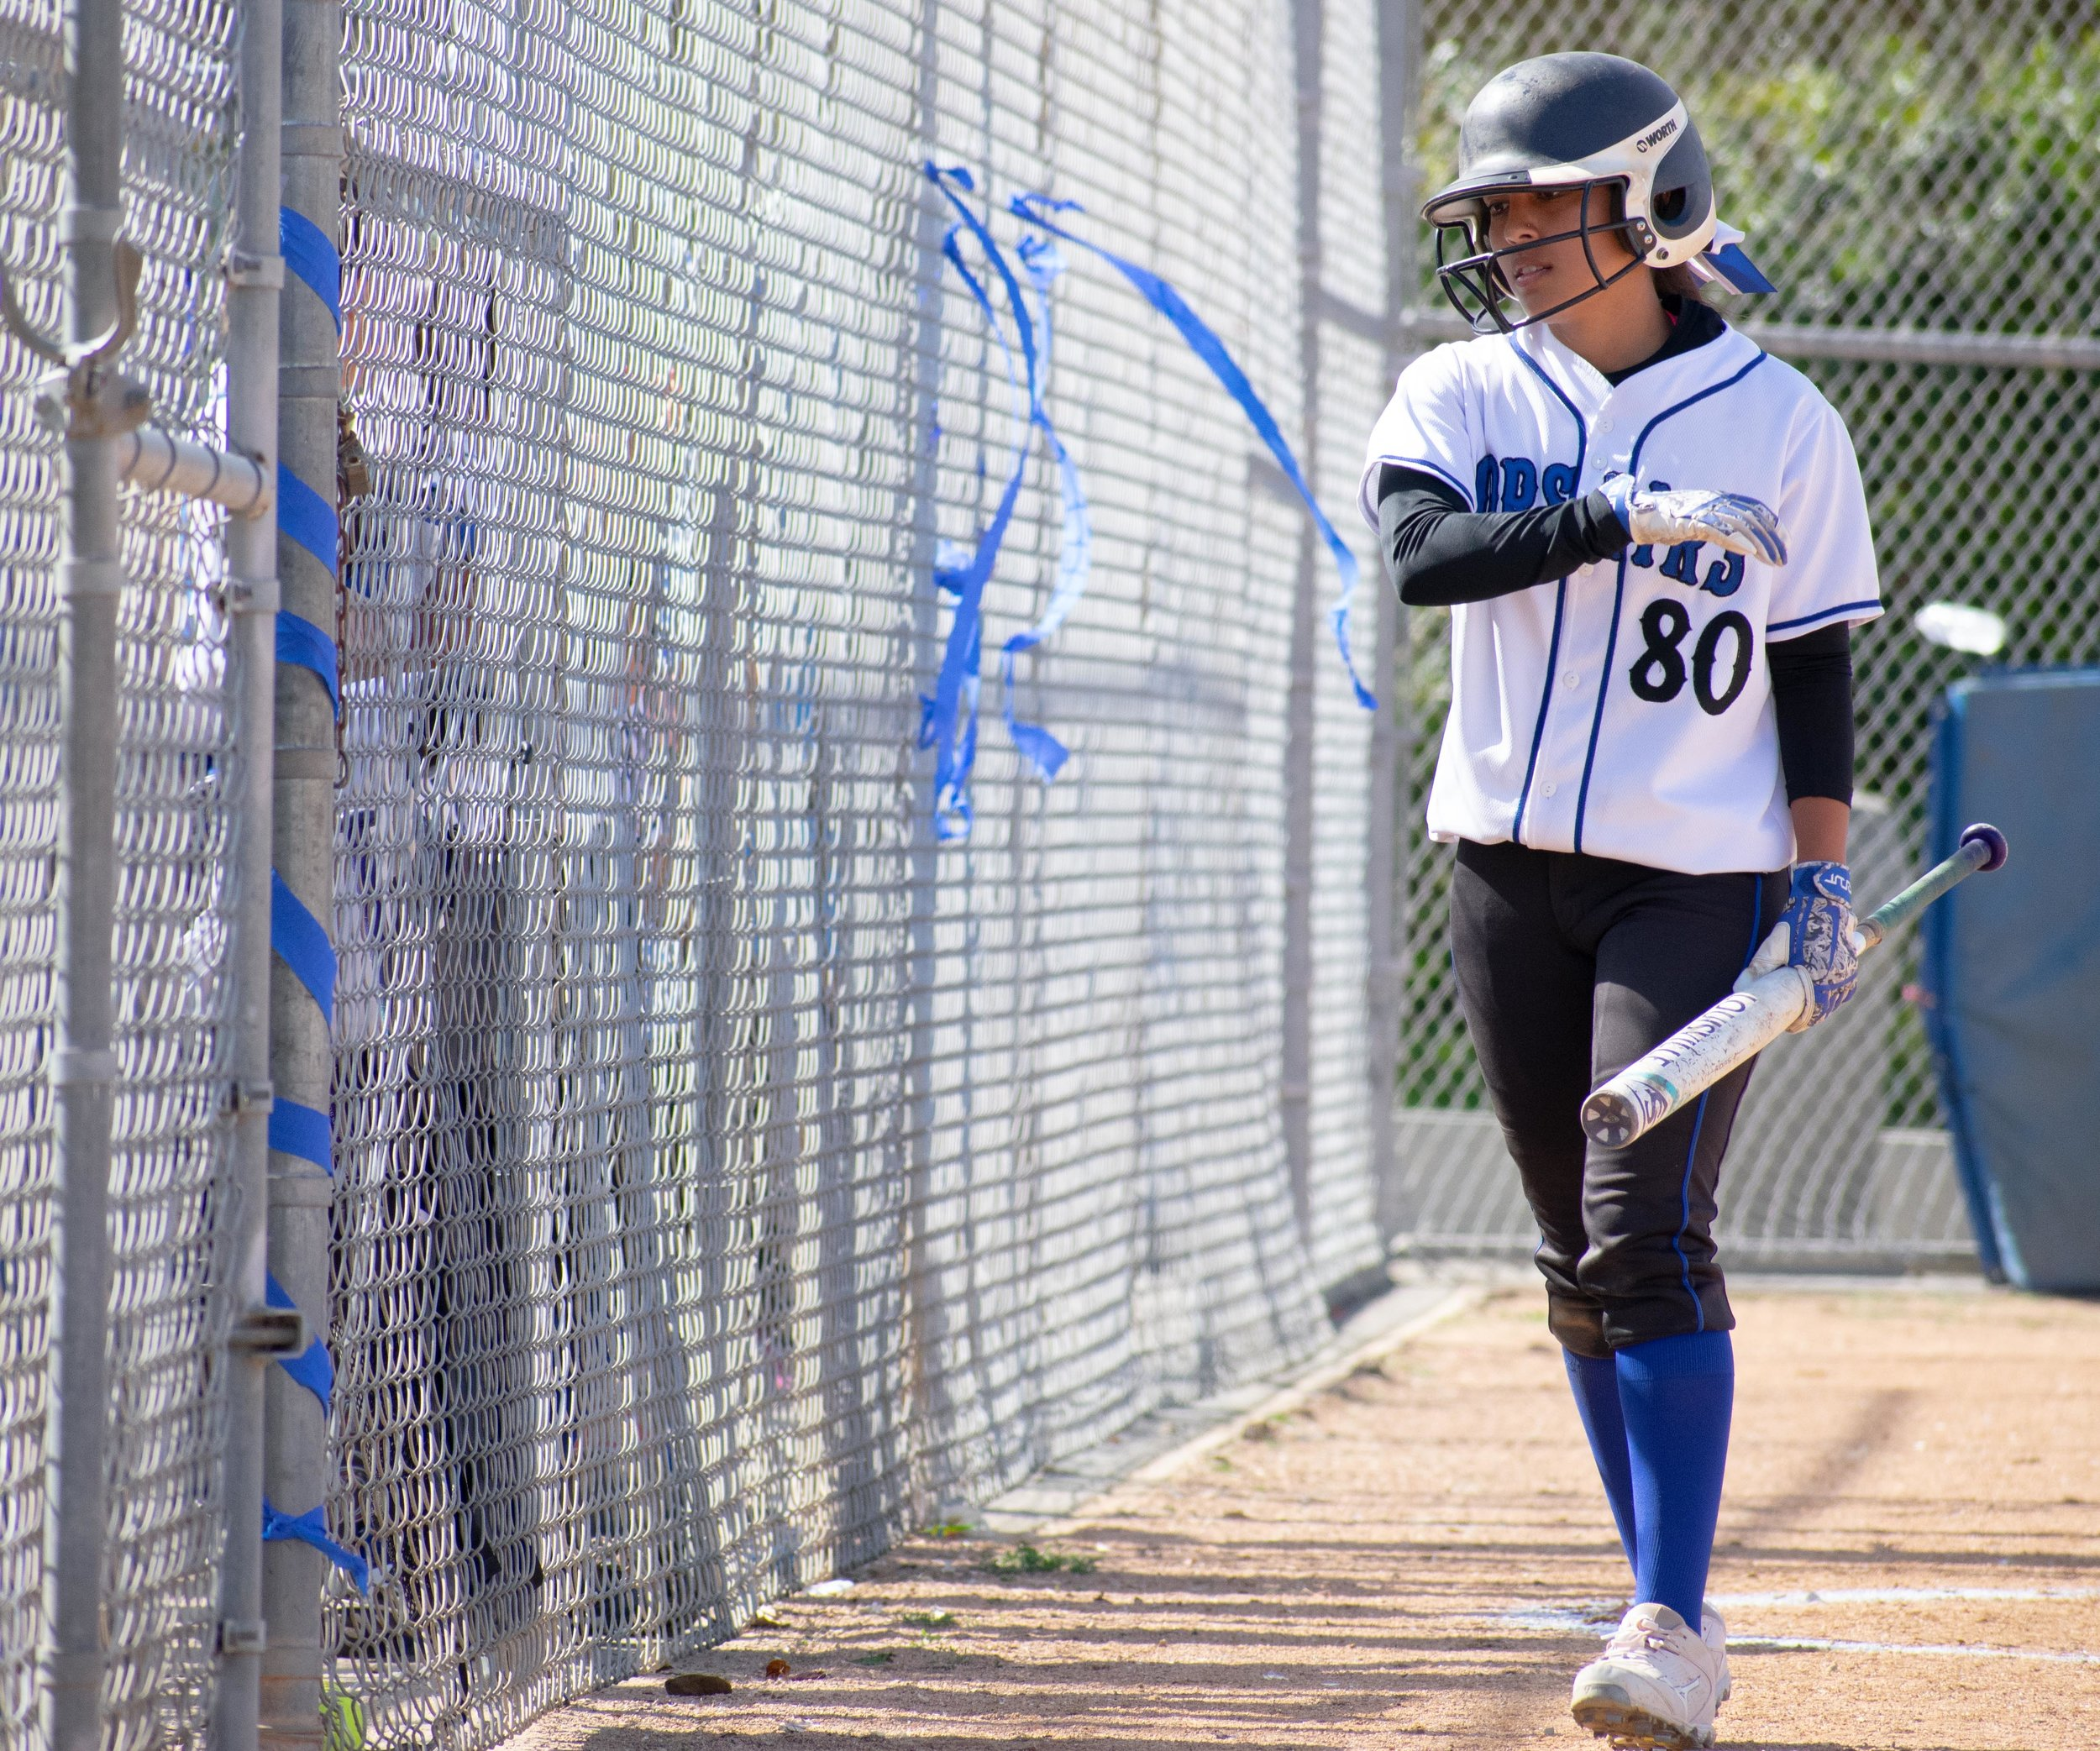 Santa Monica College Corsair Emma Soto (#80) walks to the dugout during the final game of the season against the Santa Barbara Vaqueros on Friday, April 20, 2018 at the John Adams Middle School Field in Santa Monica, California. The game was a 7-1 loss for the Corsairs, ending the season with an 8-21 record. (Ethan Lauren/Corsair Photo)